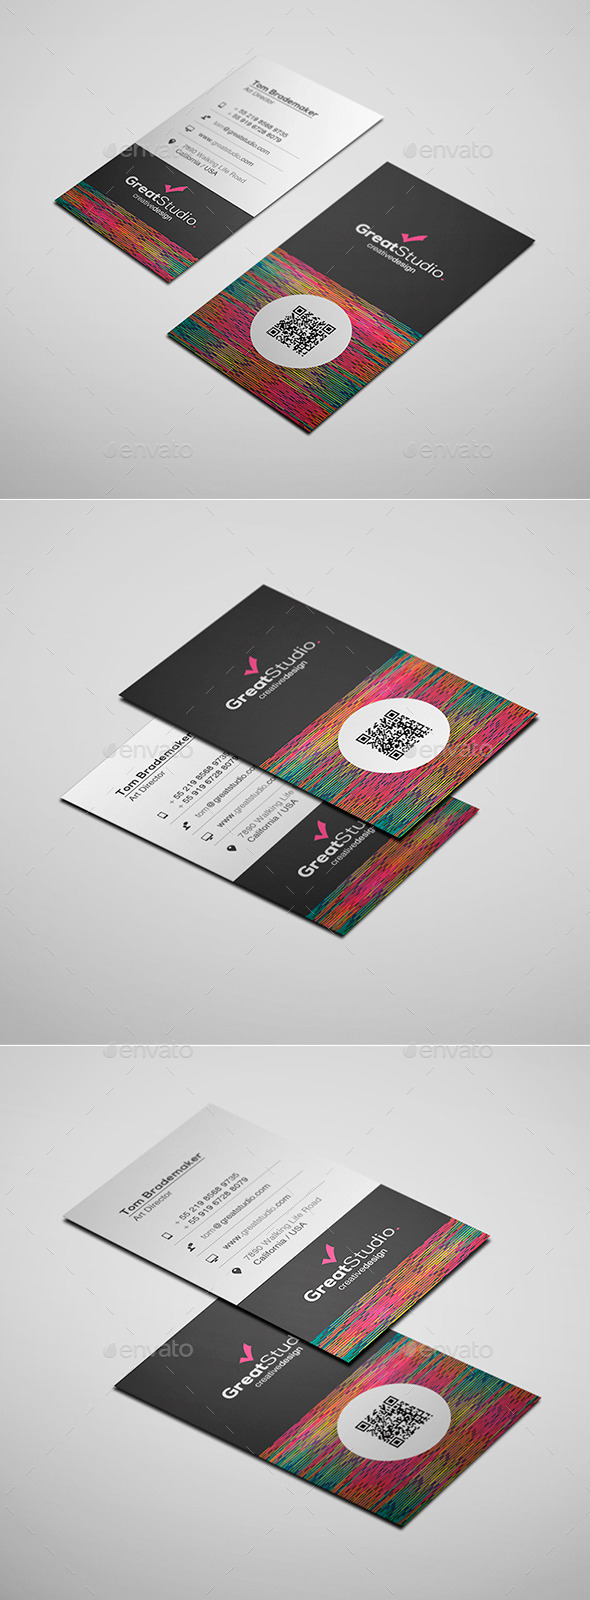 GraphicRiver Business Card Vol 07 11449674